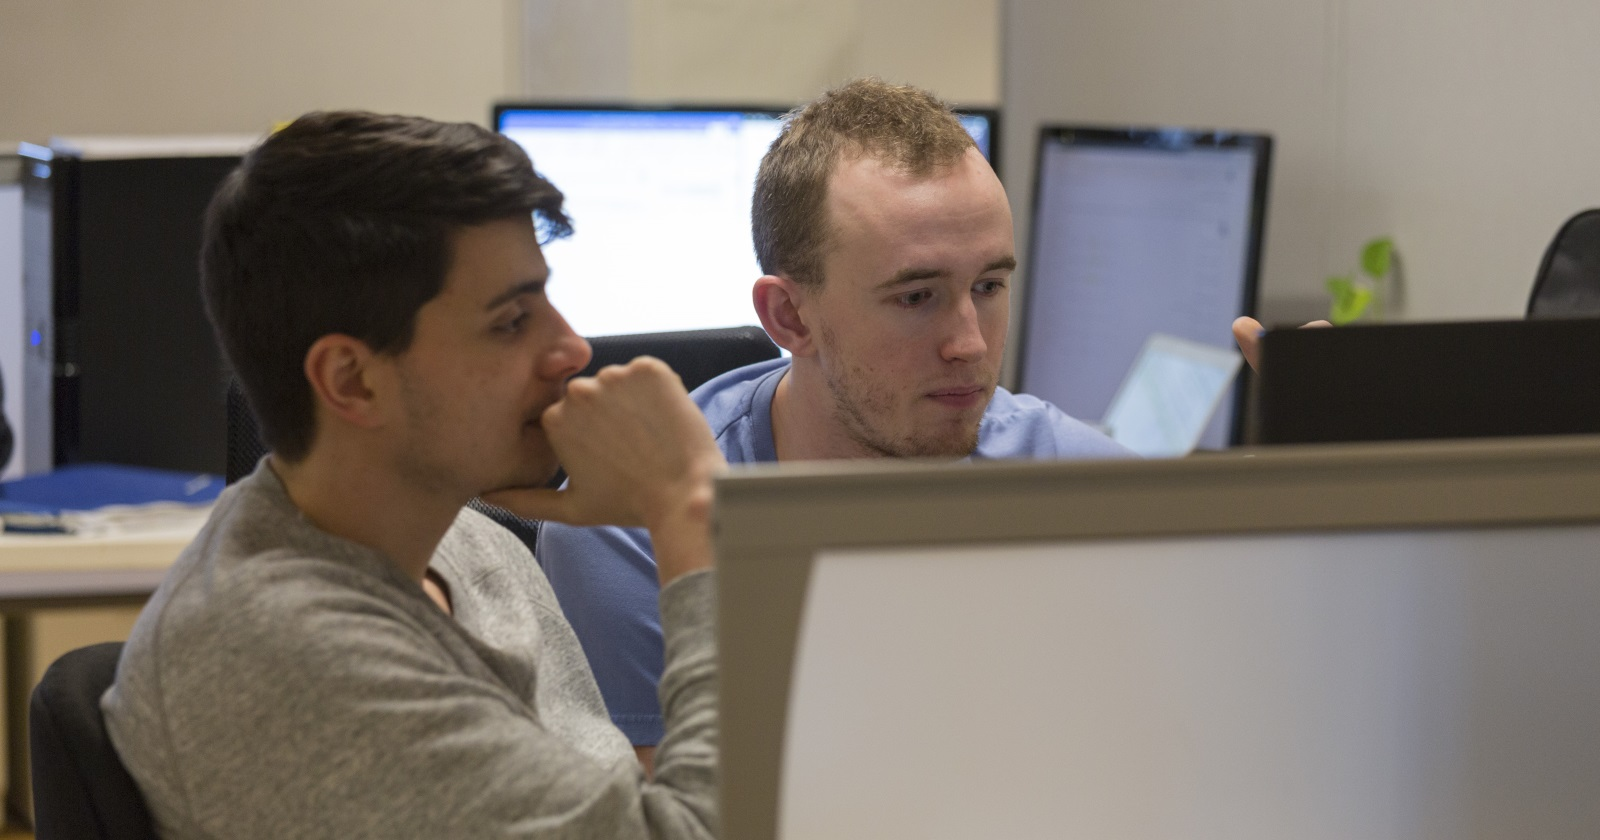 Two employees pair programming